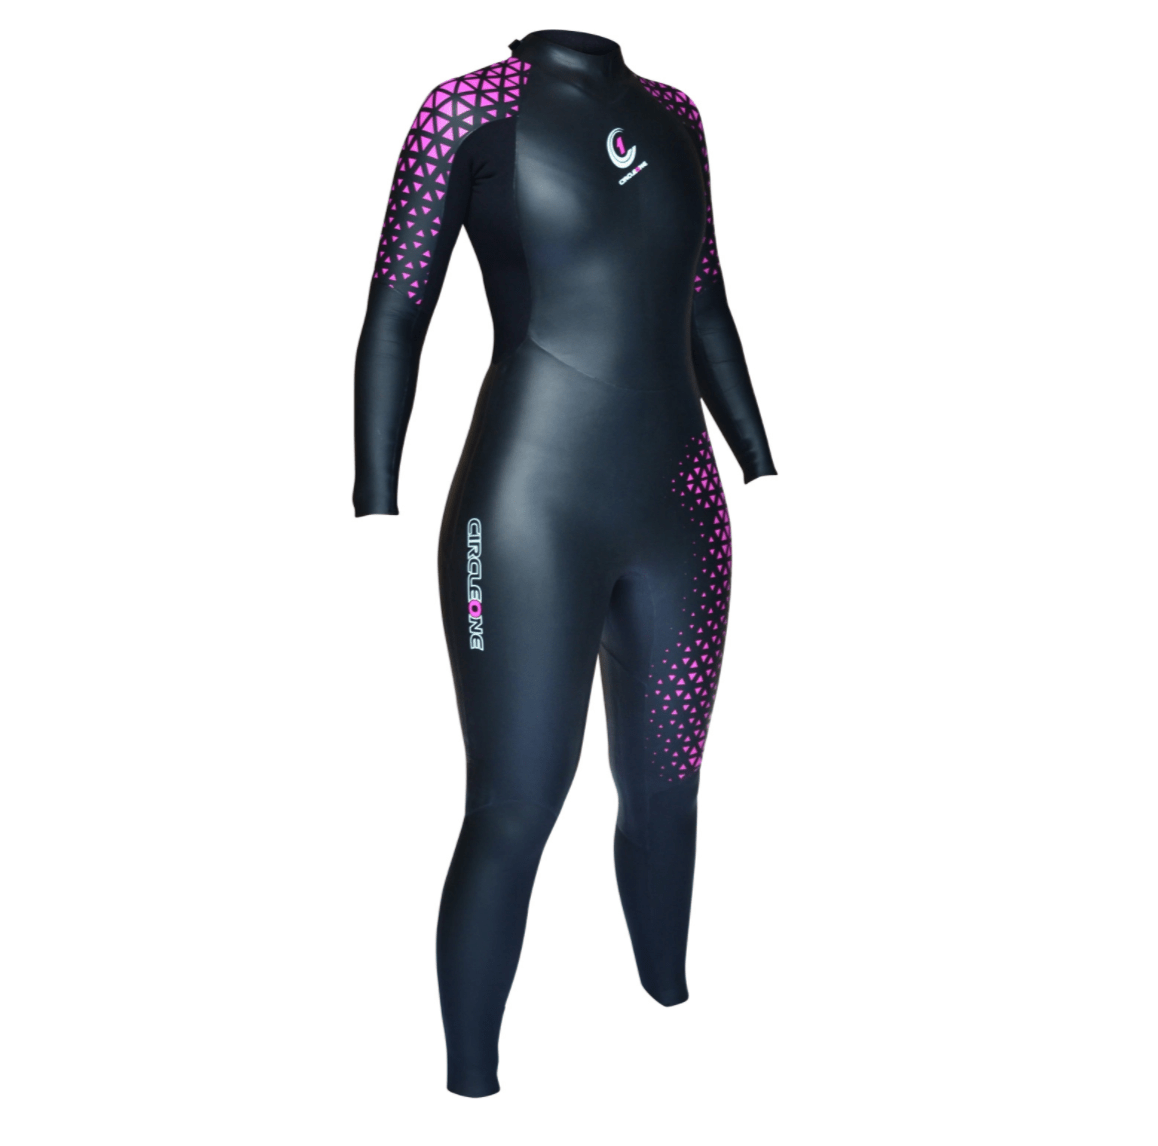 Female thermal swimming wetsuit by CircleOne